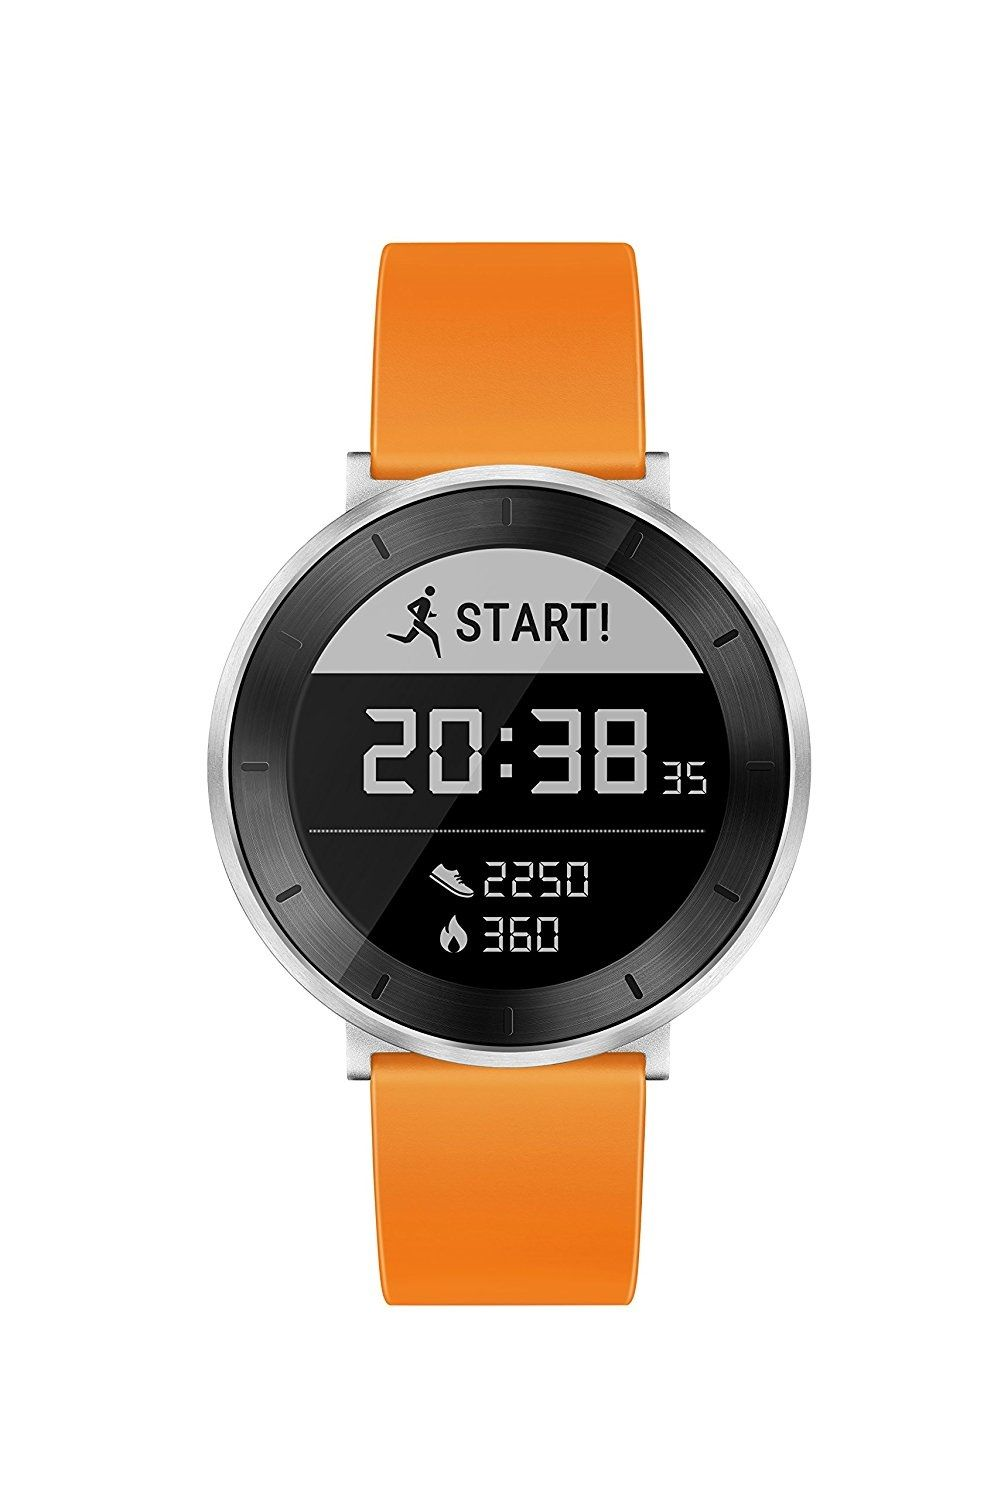 Huawei Fit Smart Fitness Watch Review Watches Smarches Fitnesswatch